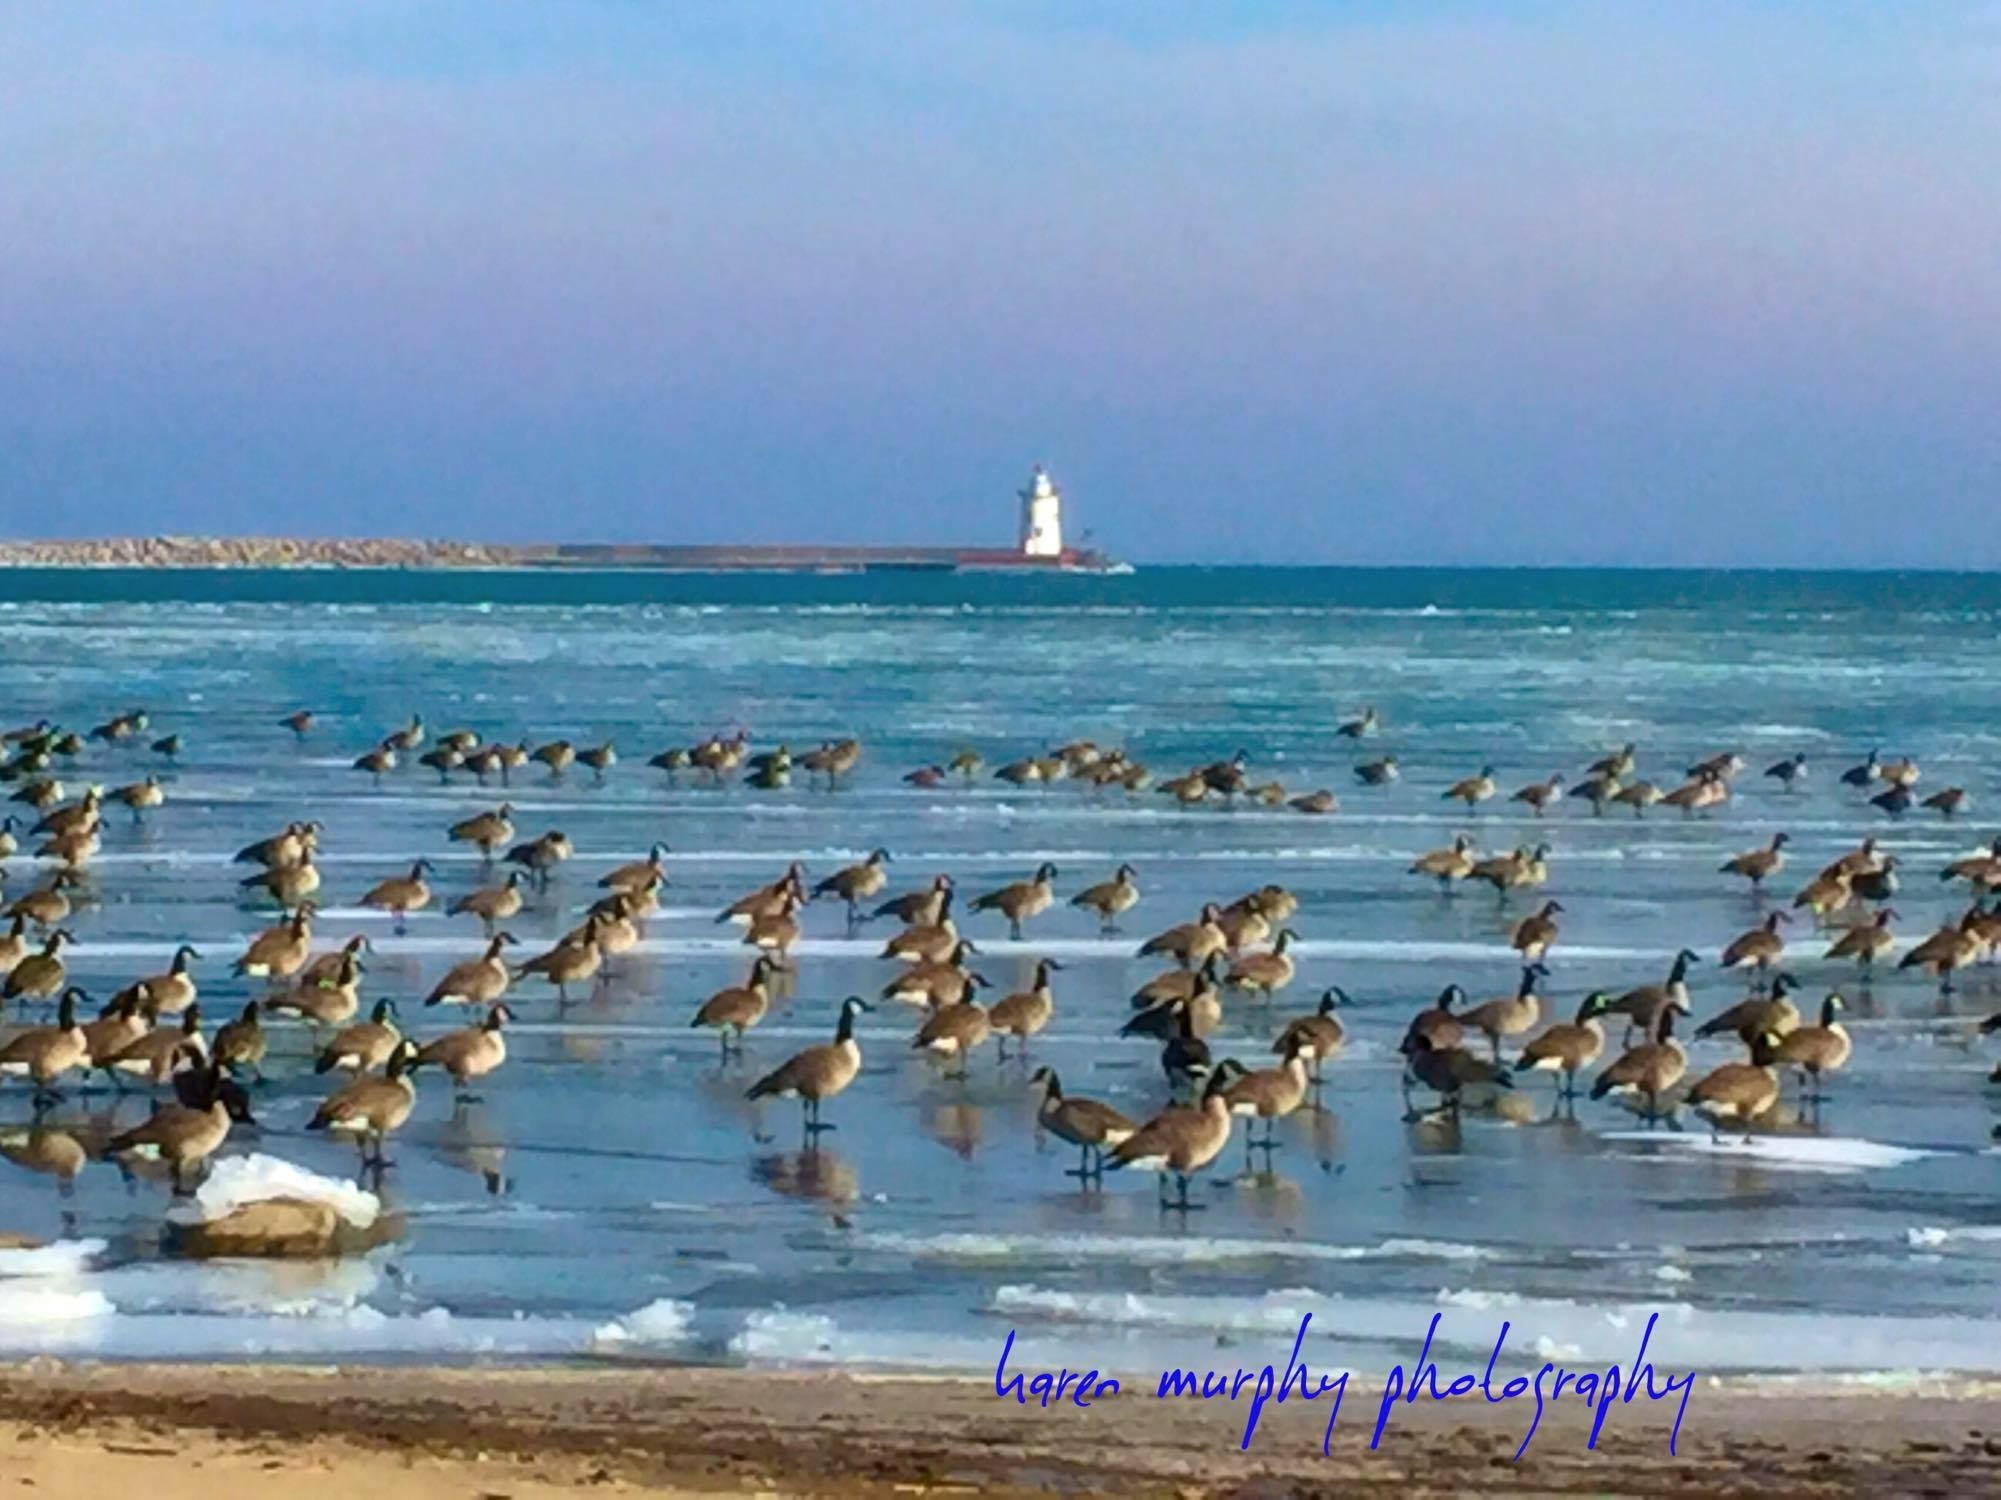 These geese are sitting in front of Harbor Beach Lighthouse, waiting for those spring breezes. Photo captured by Karen Murphy Photography.